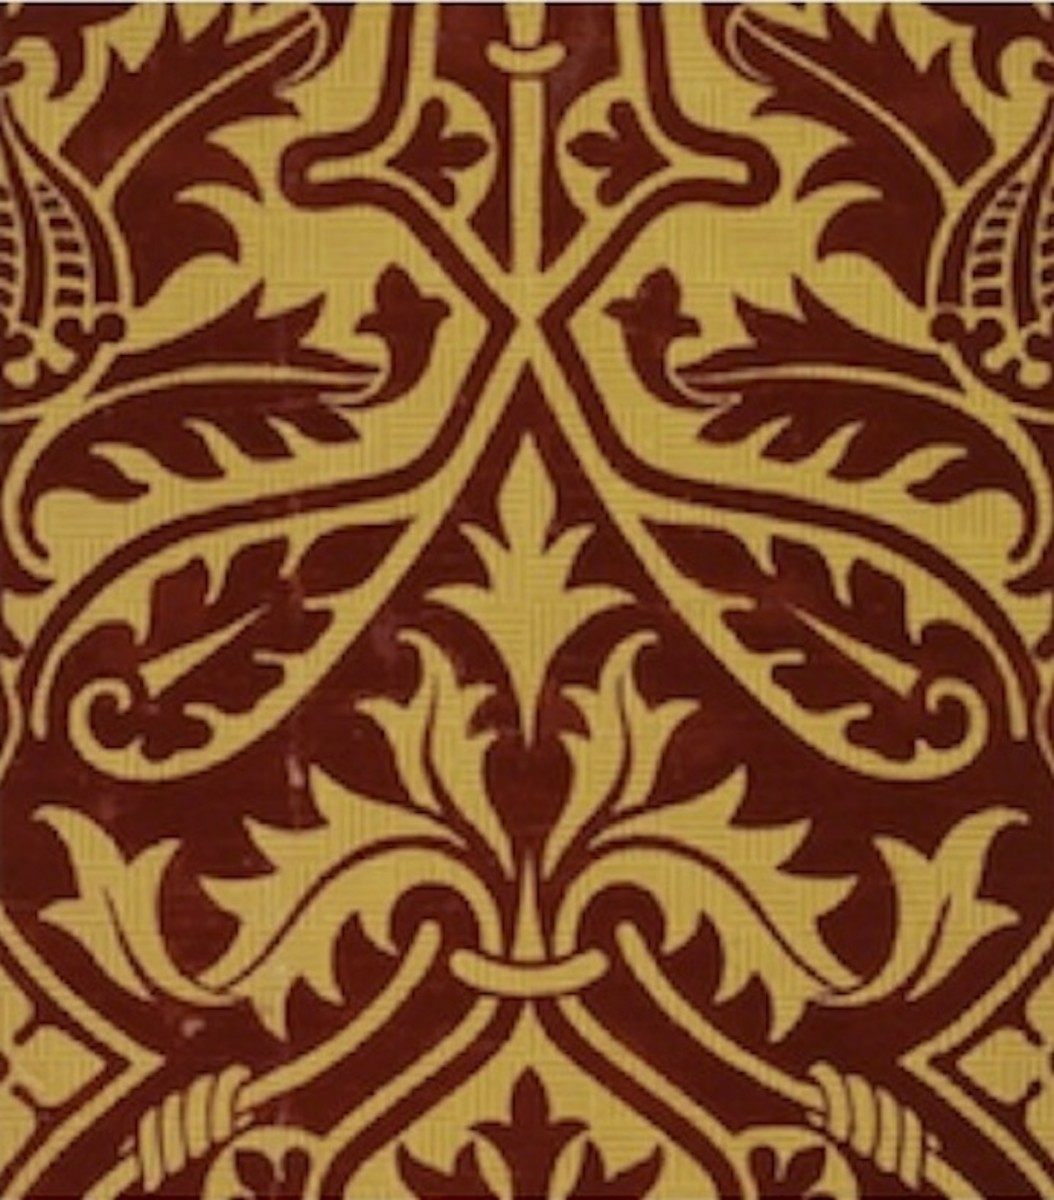 Flocked Pugin Design Wallpaper c. 1850